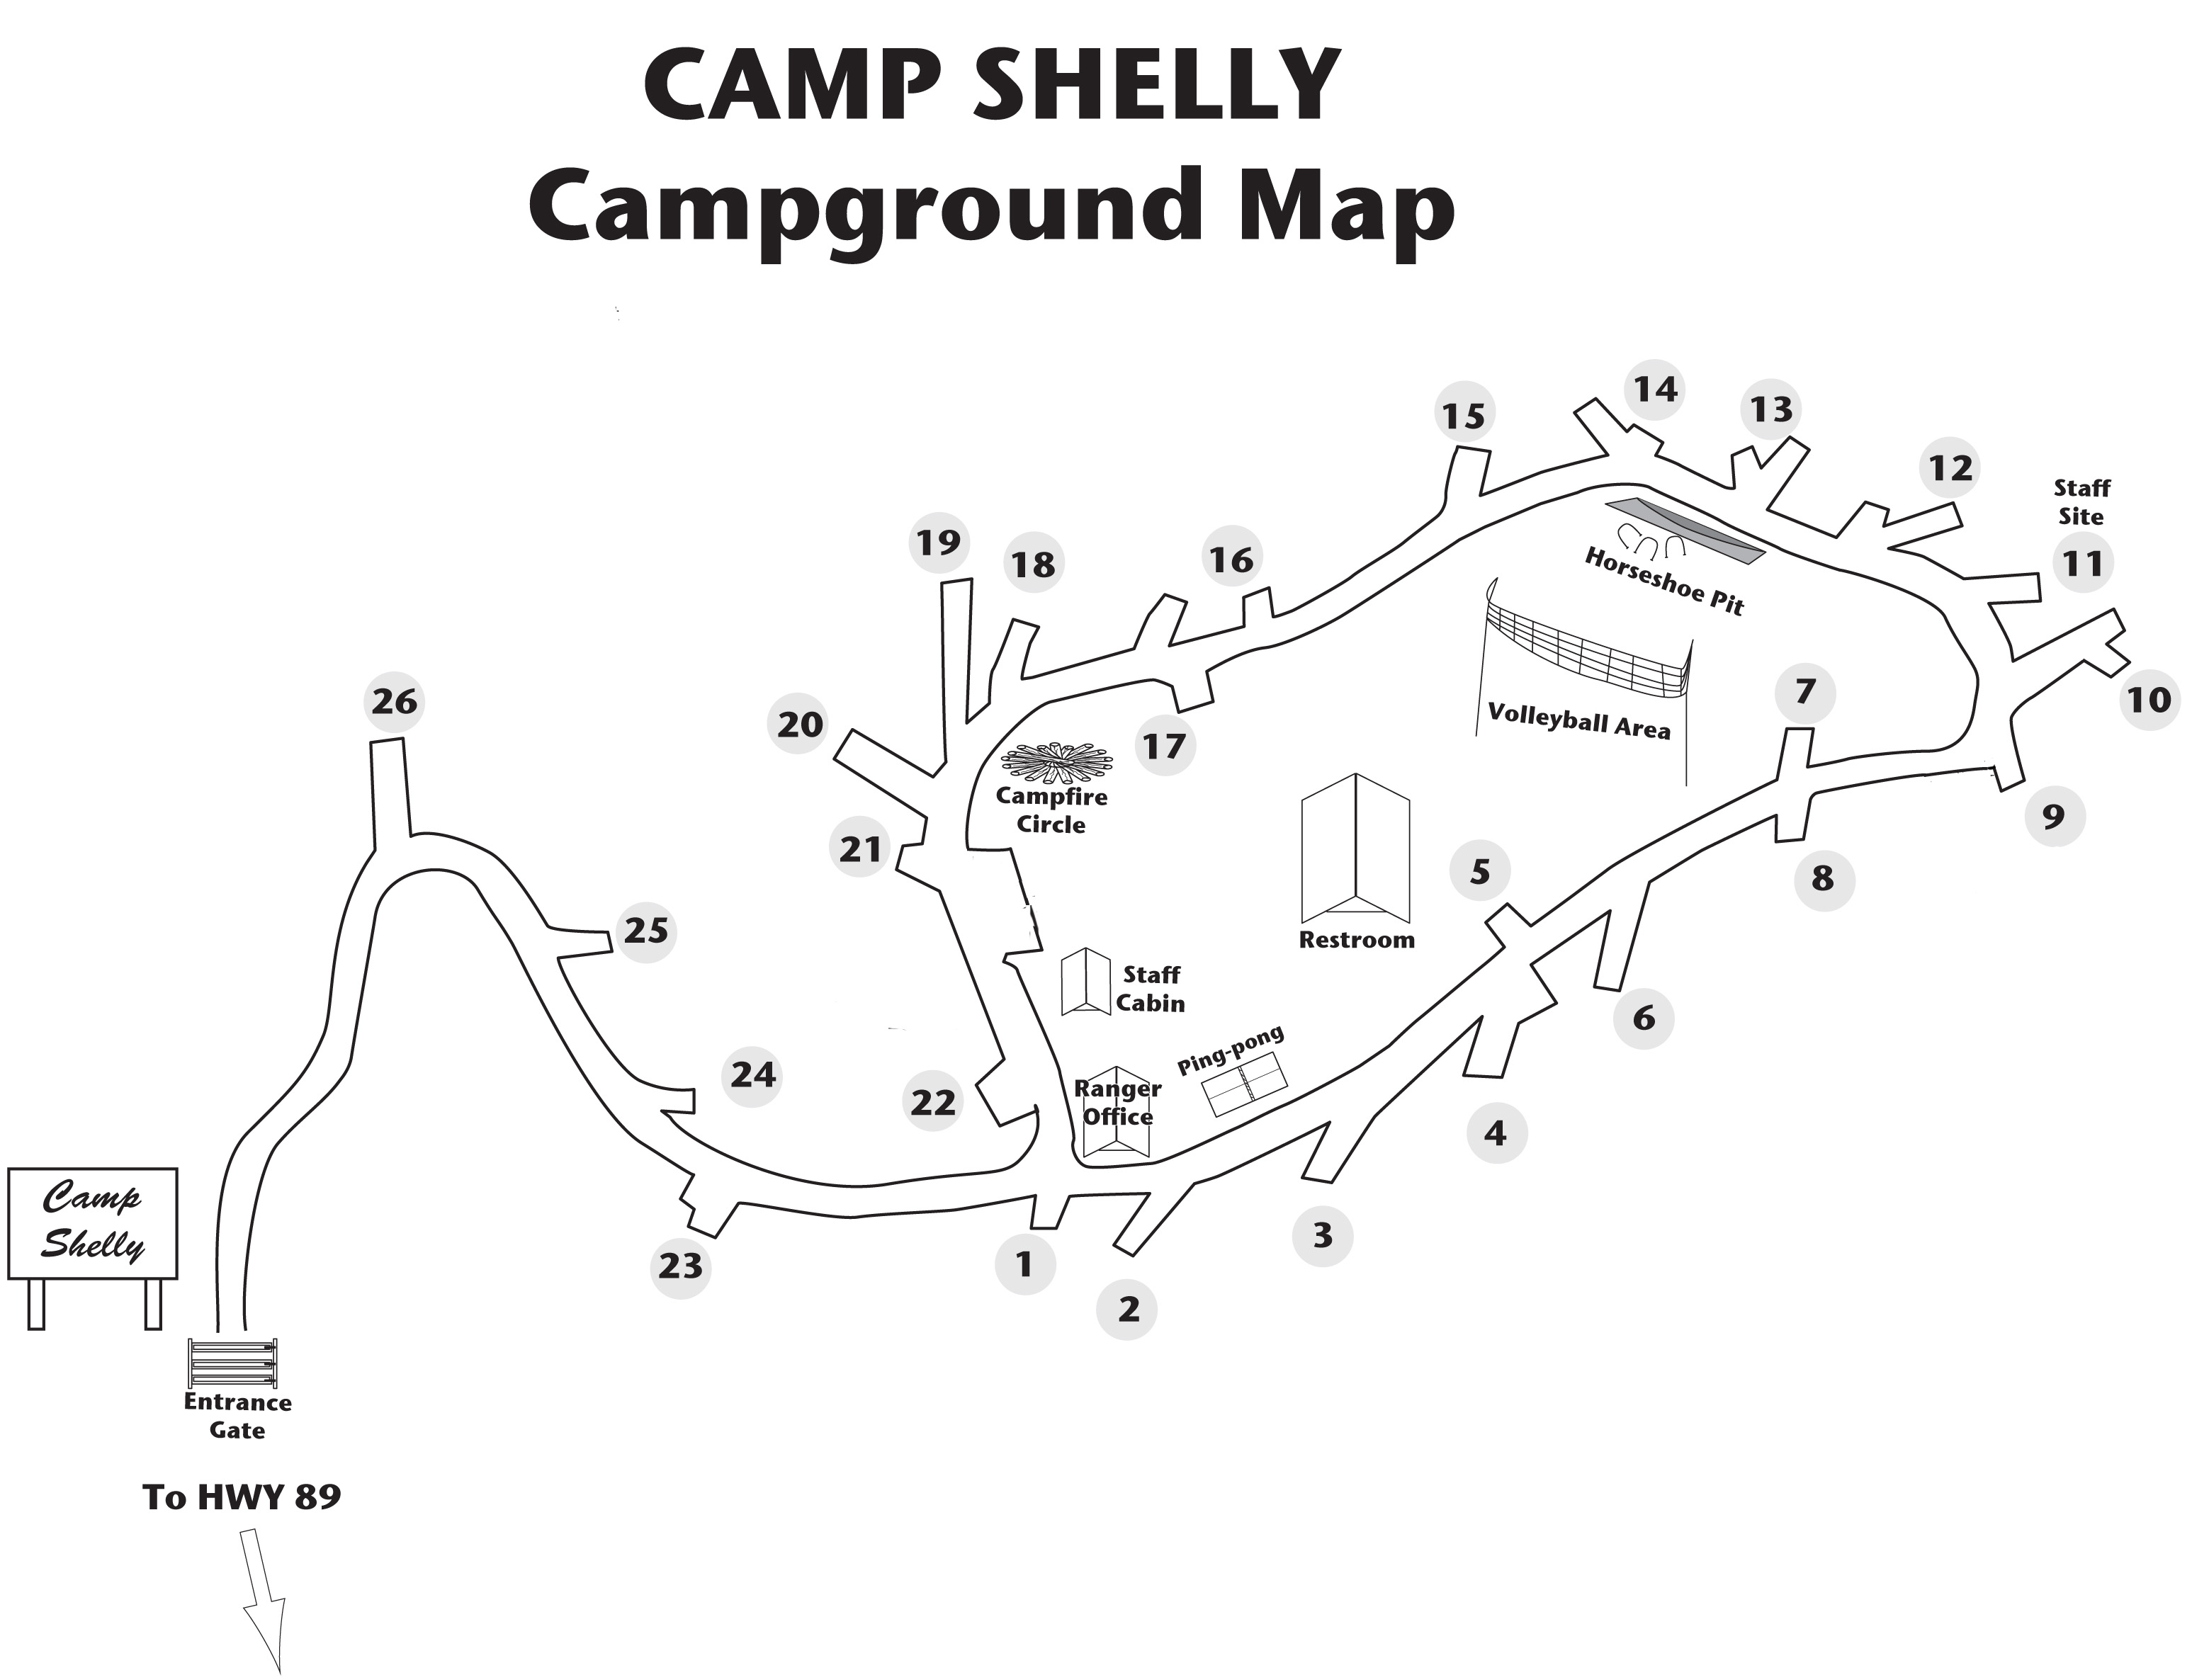 Camp Shelly At South Lake Tahoe Reservation And Campsite